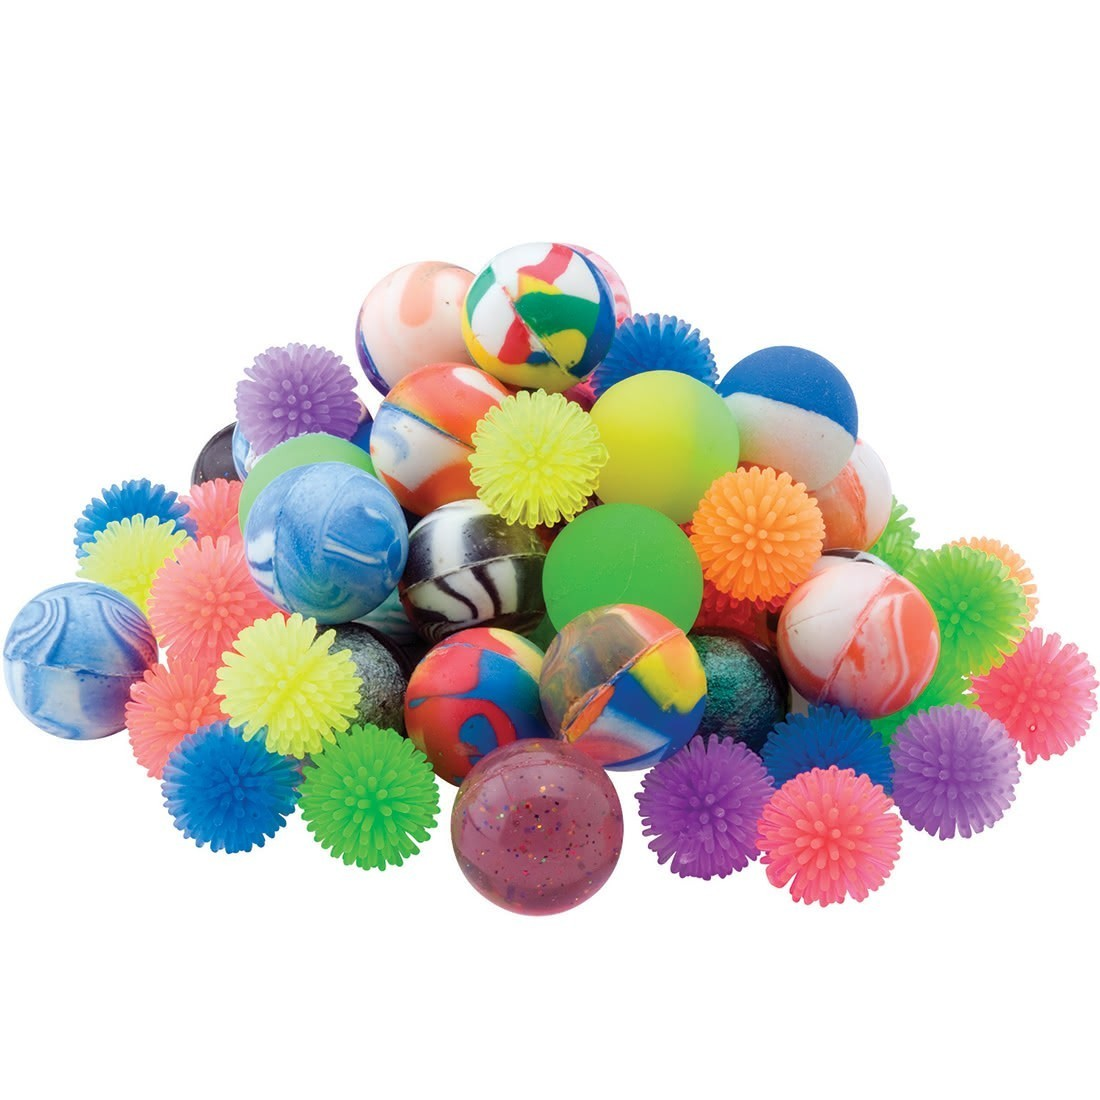 Bouncing Balls and Spike Balls Value Pack [image]